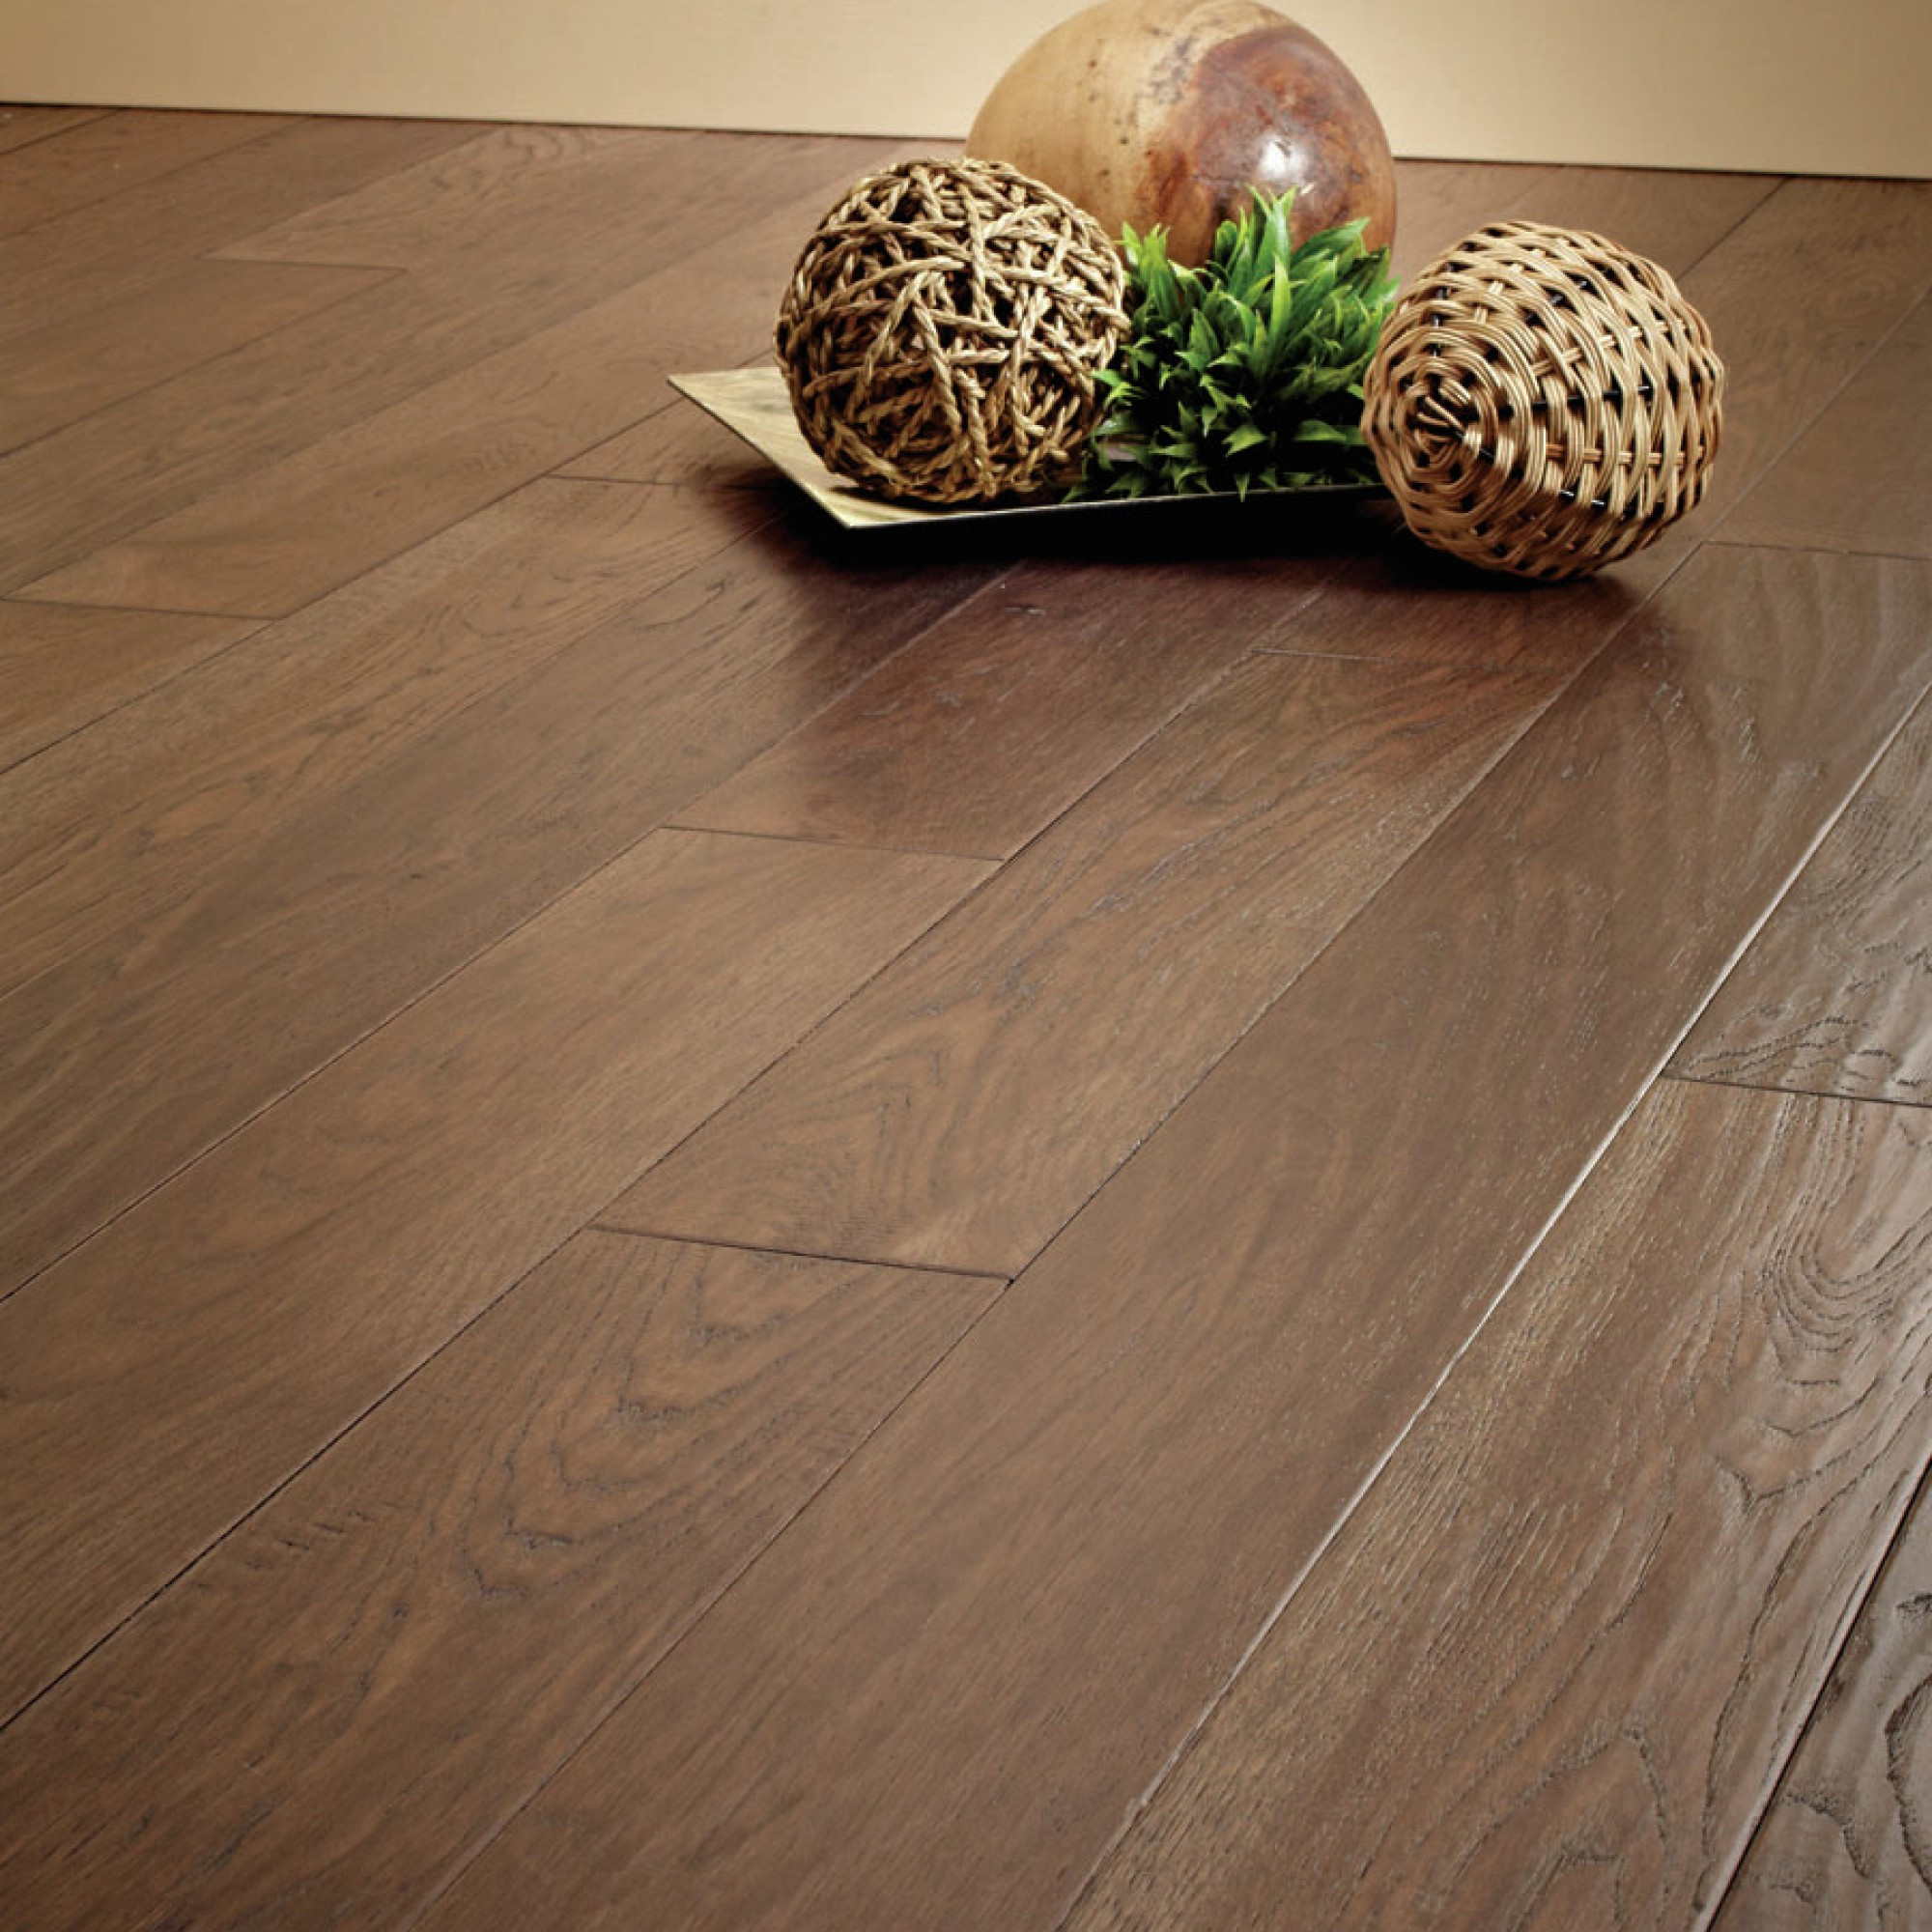 cape engineered view image me installation portfolio oolong floors living hickory limerick room larger organic items